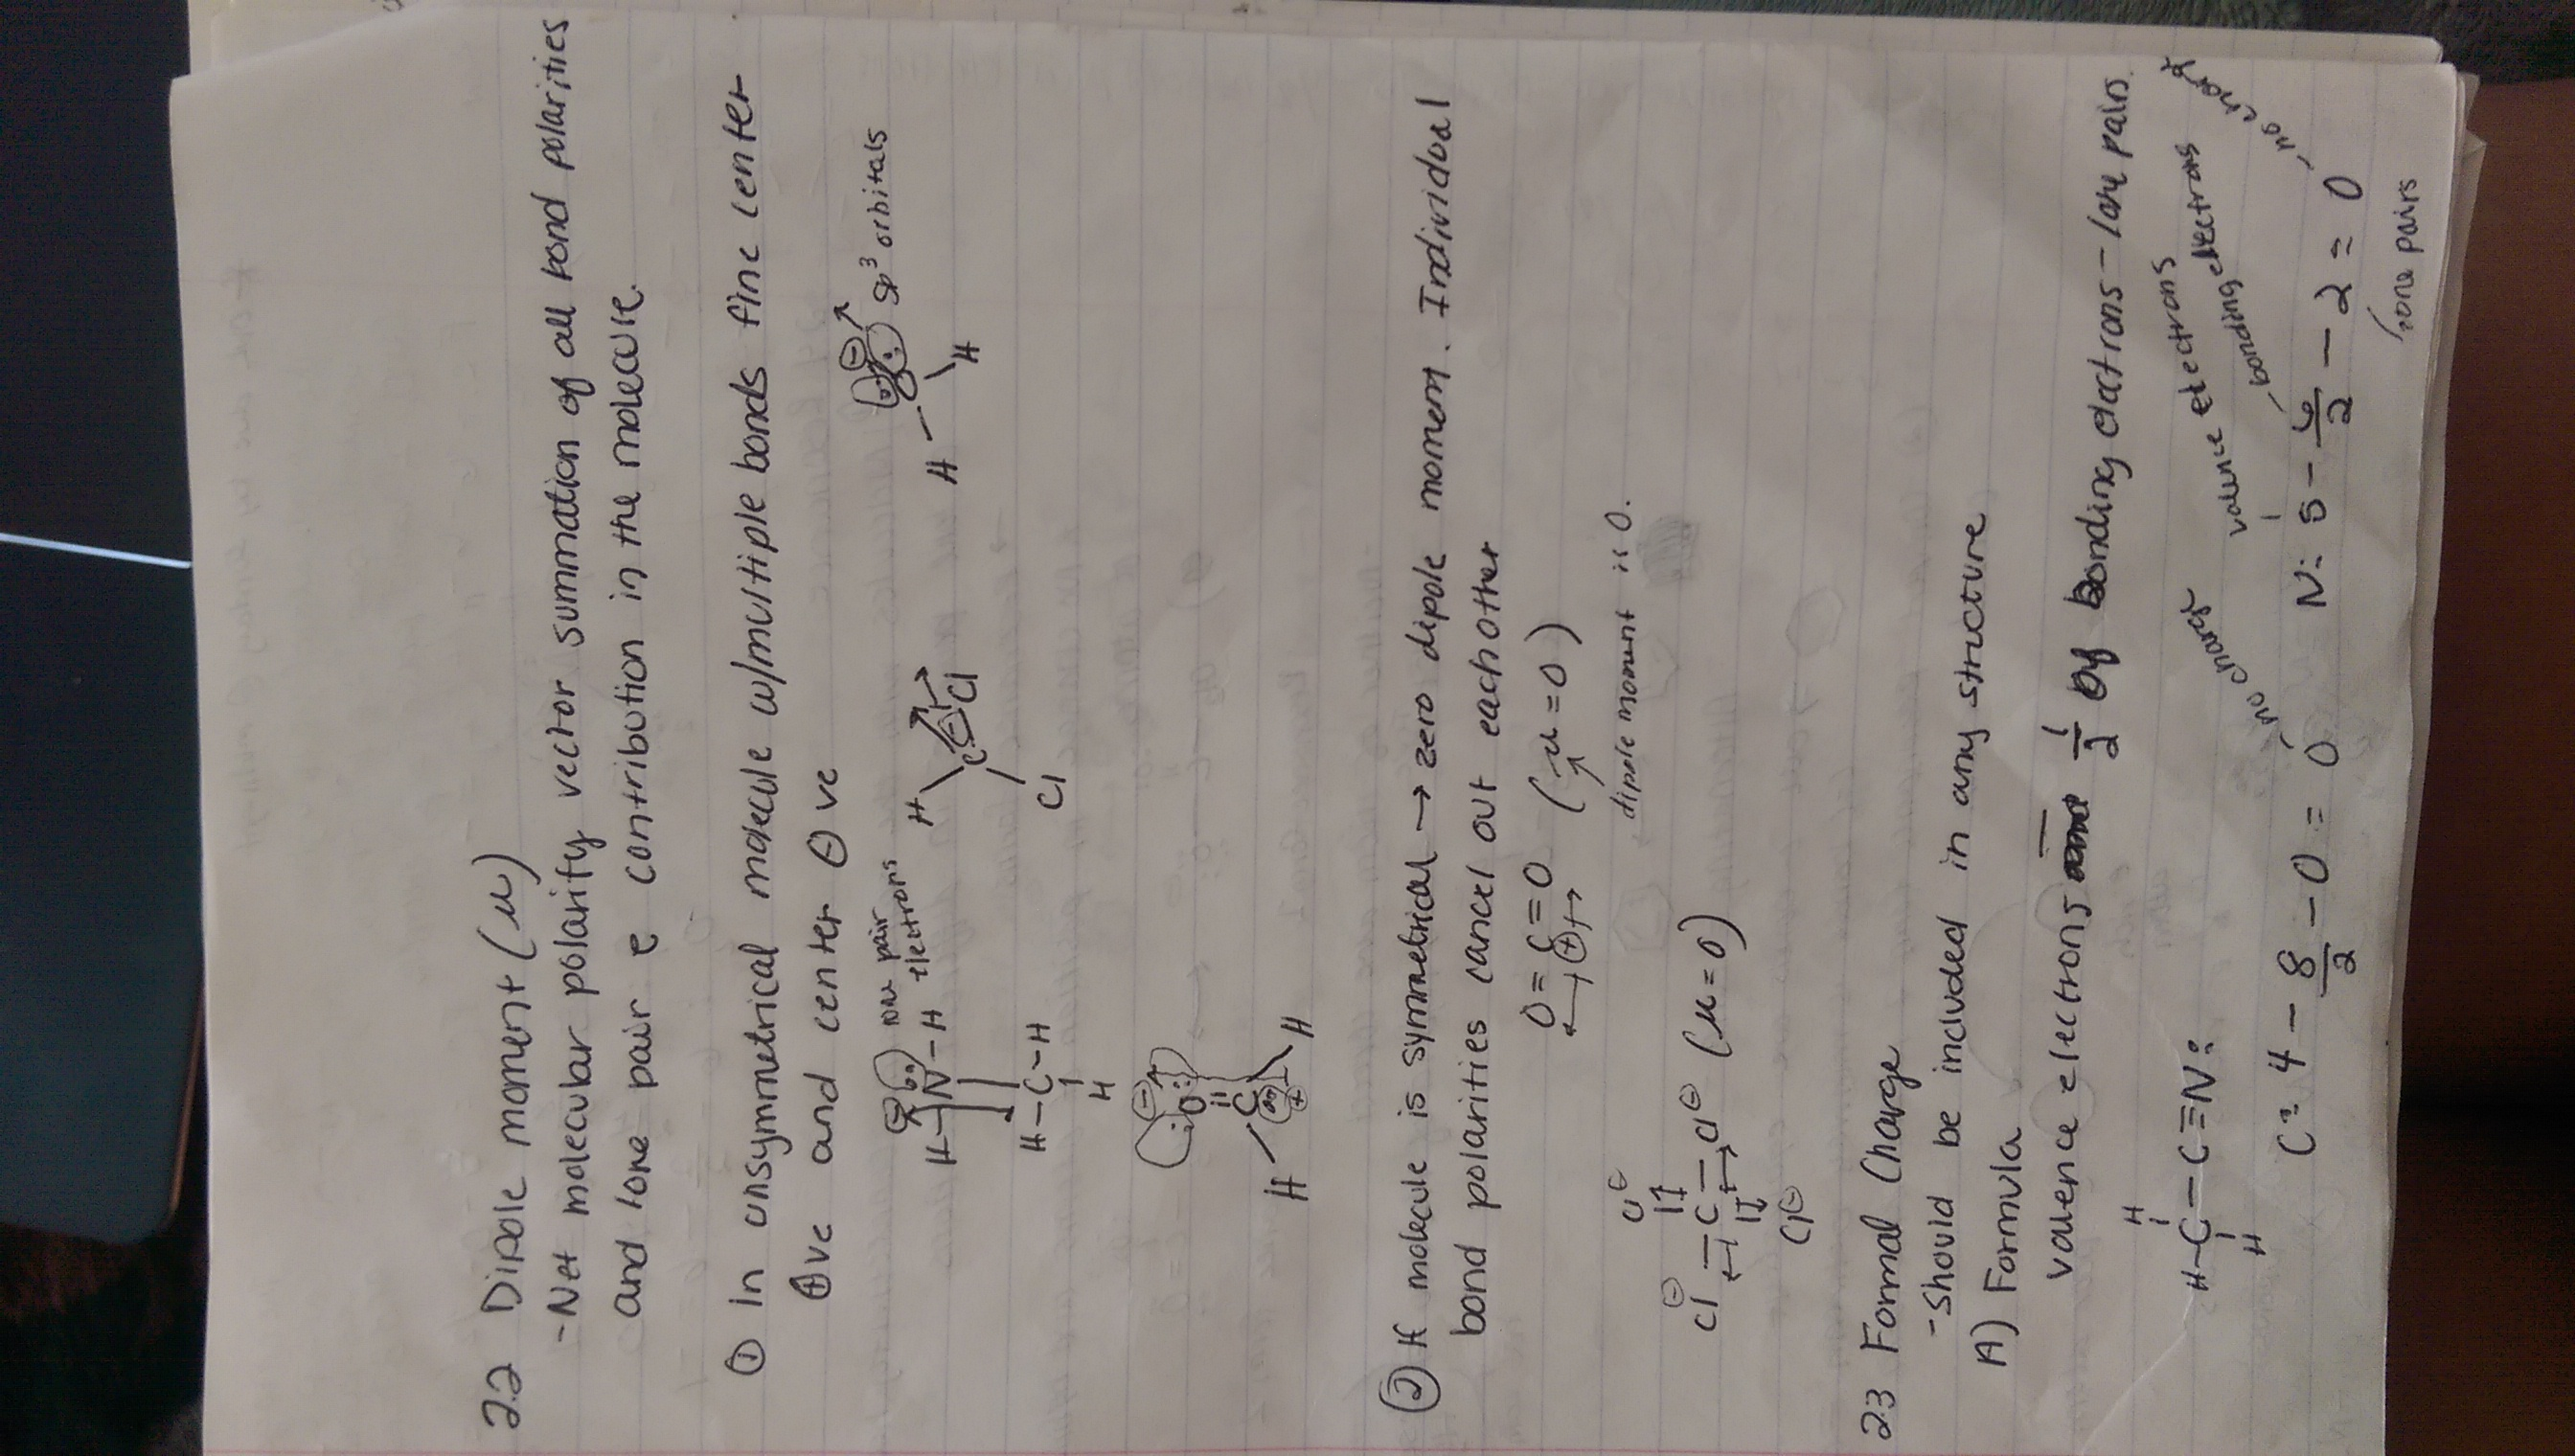 CHM 345 - Class Notes - Week 2